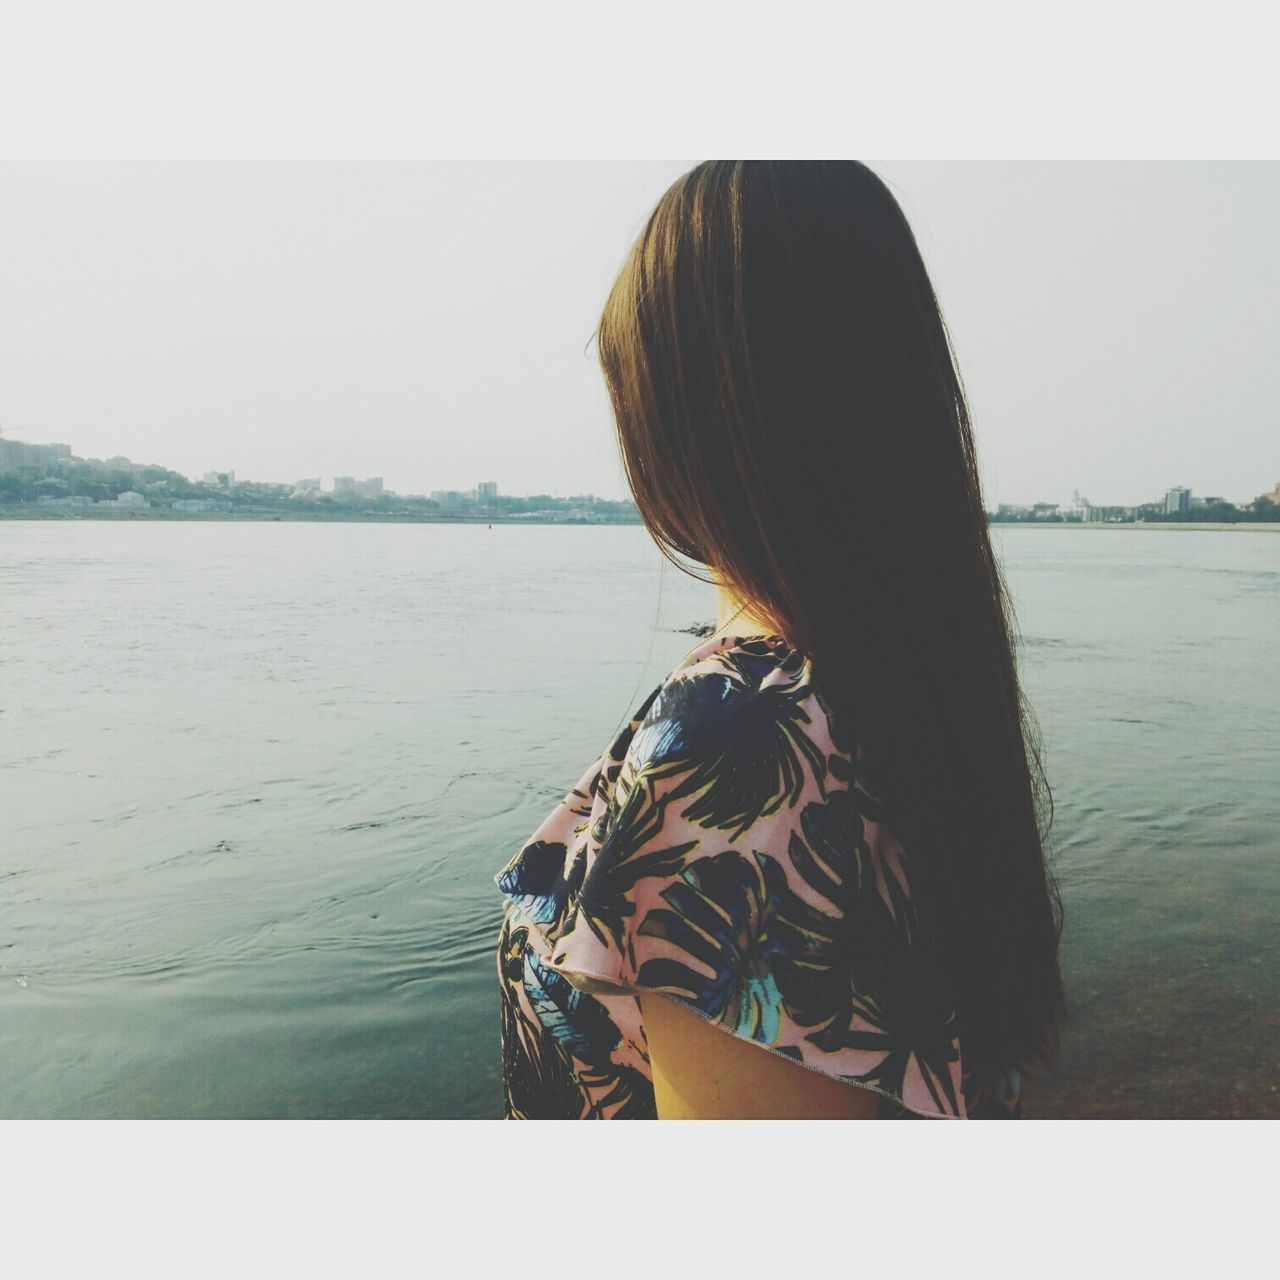 rear view, real people, one person, water, sea, day, leisure activity, nature, clear sky, women, outdoors, standing, lifestyles, tranquility, horizon over water, beach, beauty in nature, sky, nautical vessel, young women, young adult, people